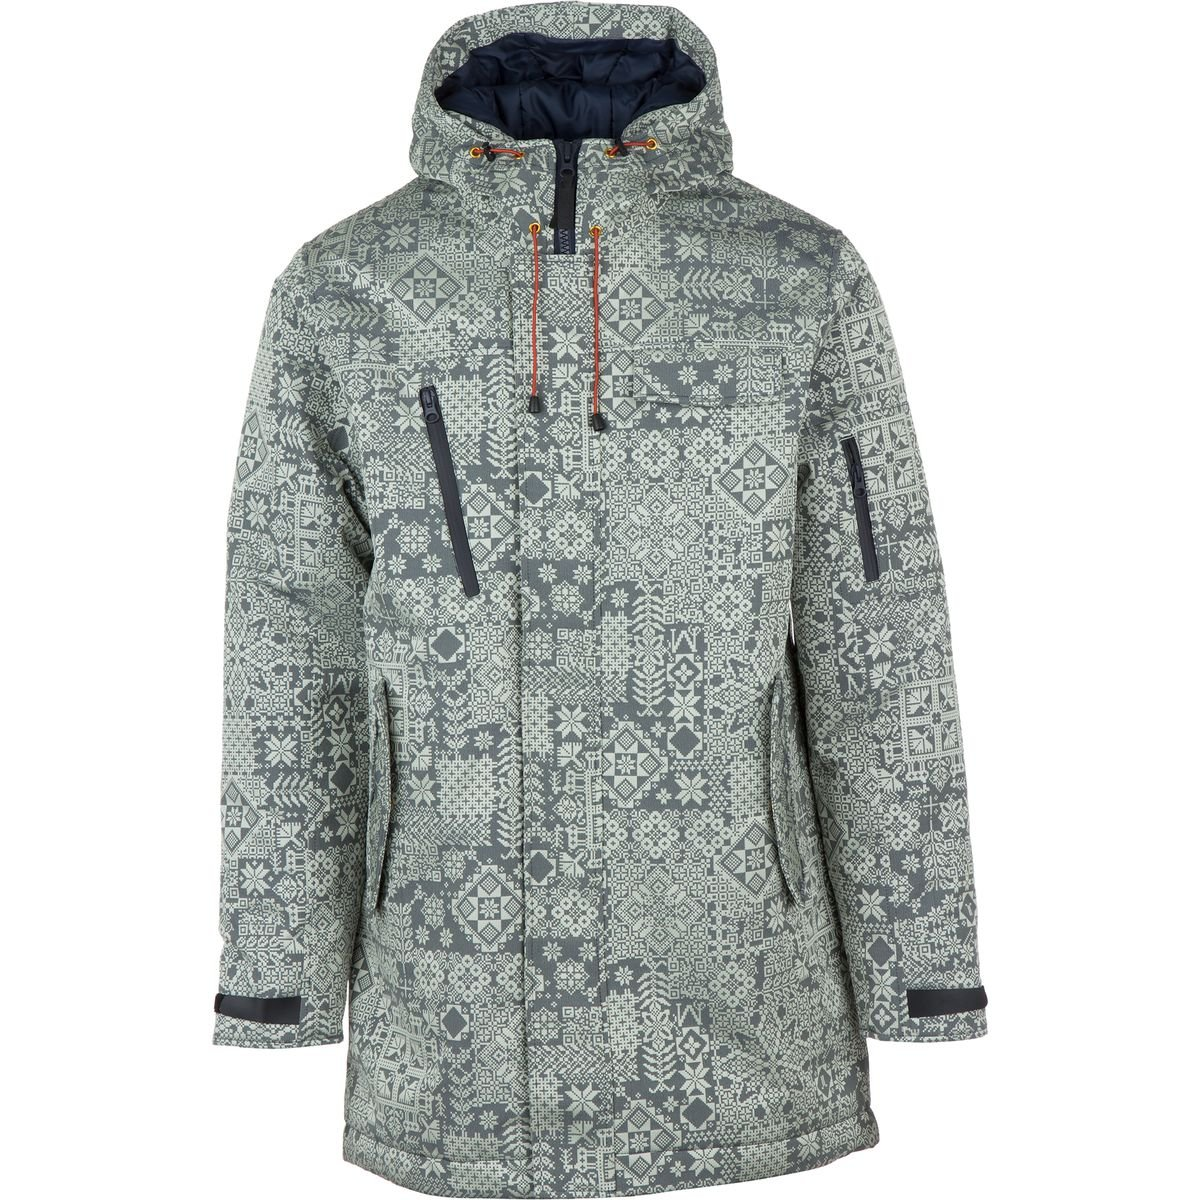 WeSC - Langdon Hooded Jacket - Blue Iris